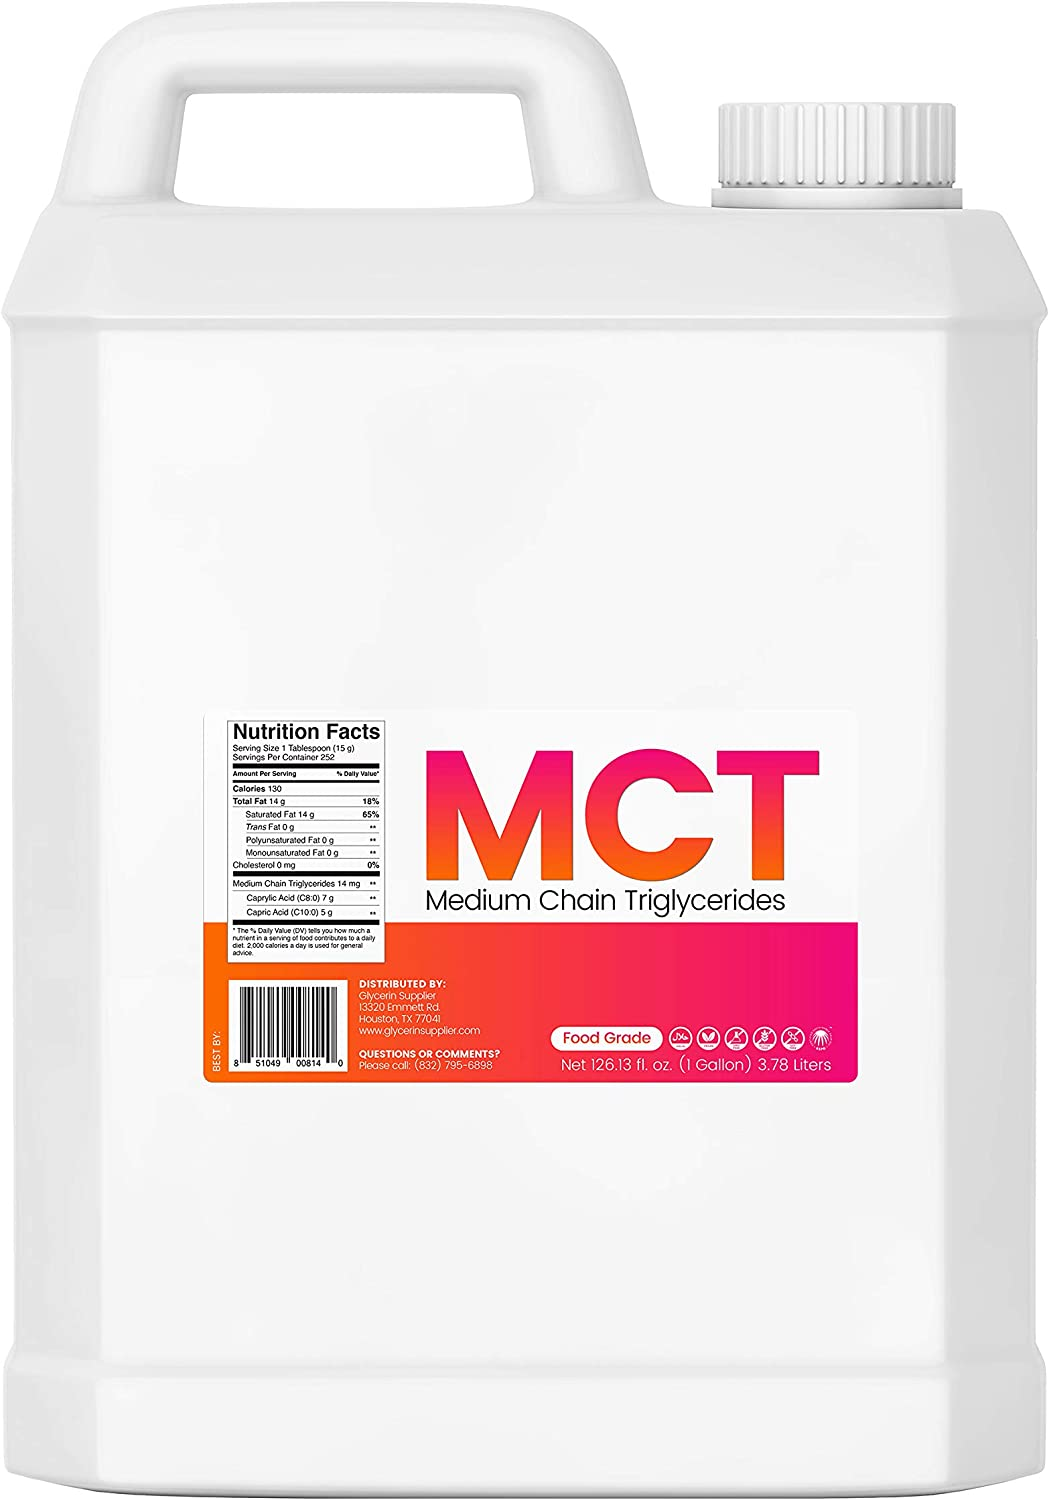 MCT Oil - 1 Gallon (128 Oz.) Sustainable Palm Derived - Food Grade - Non GMO - Halal - for Sports Nutrition, Keto and Paleo Diet, Clean Energy, Tinctures, Extracts